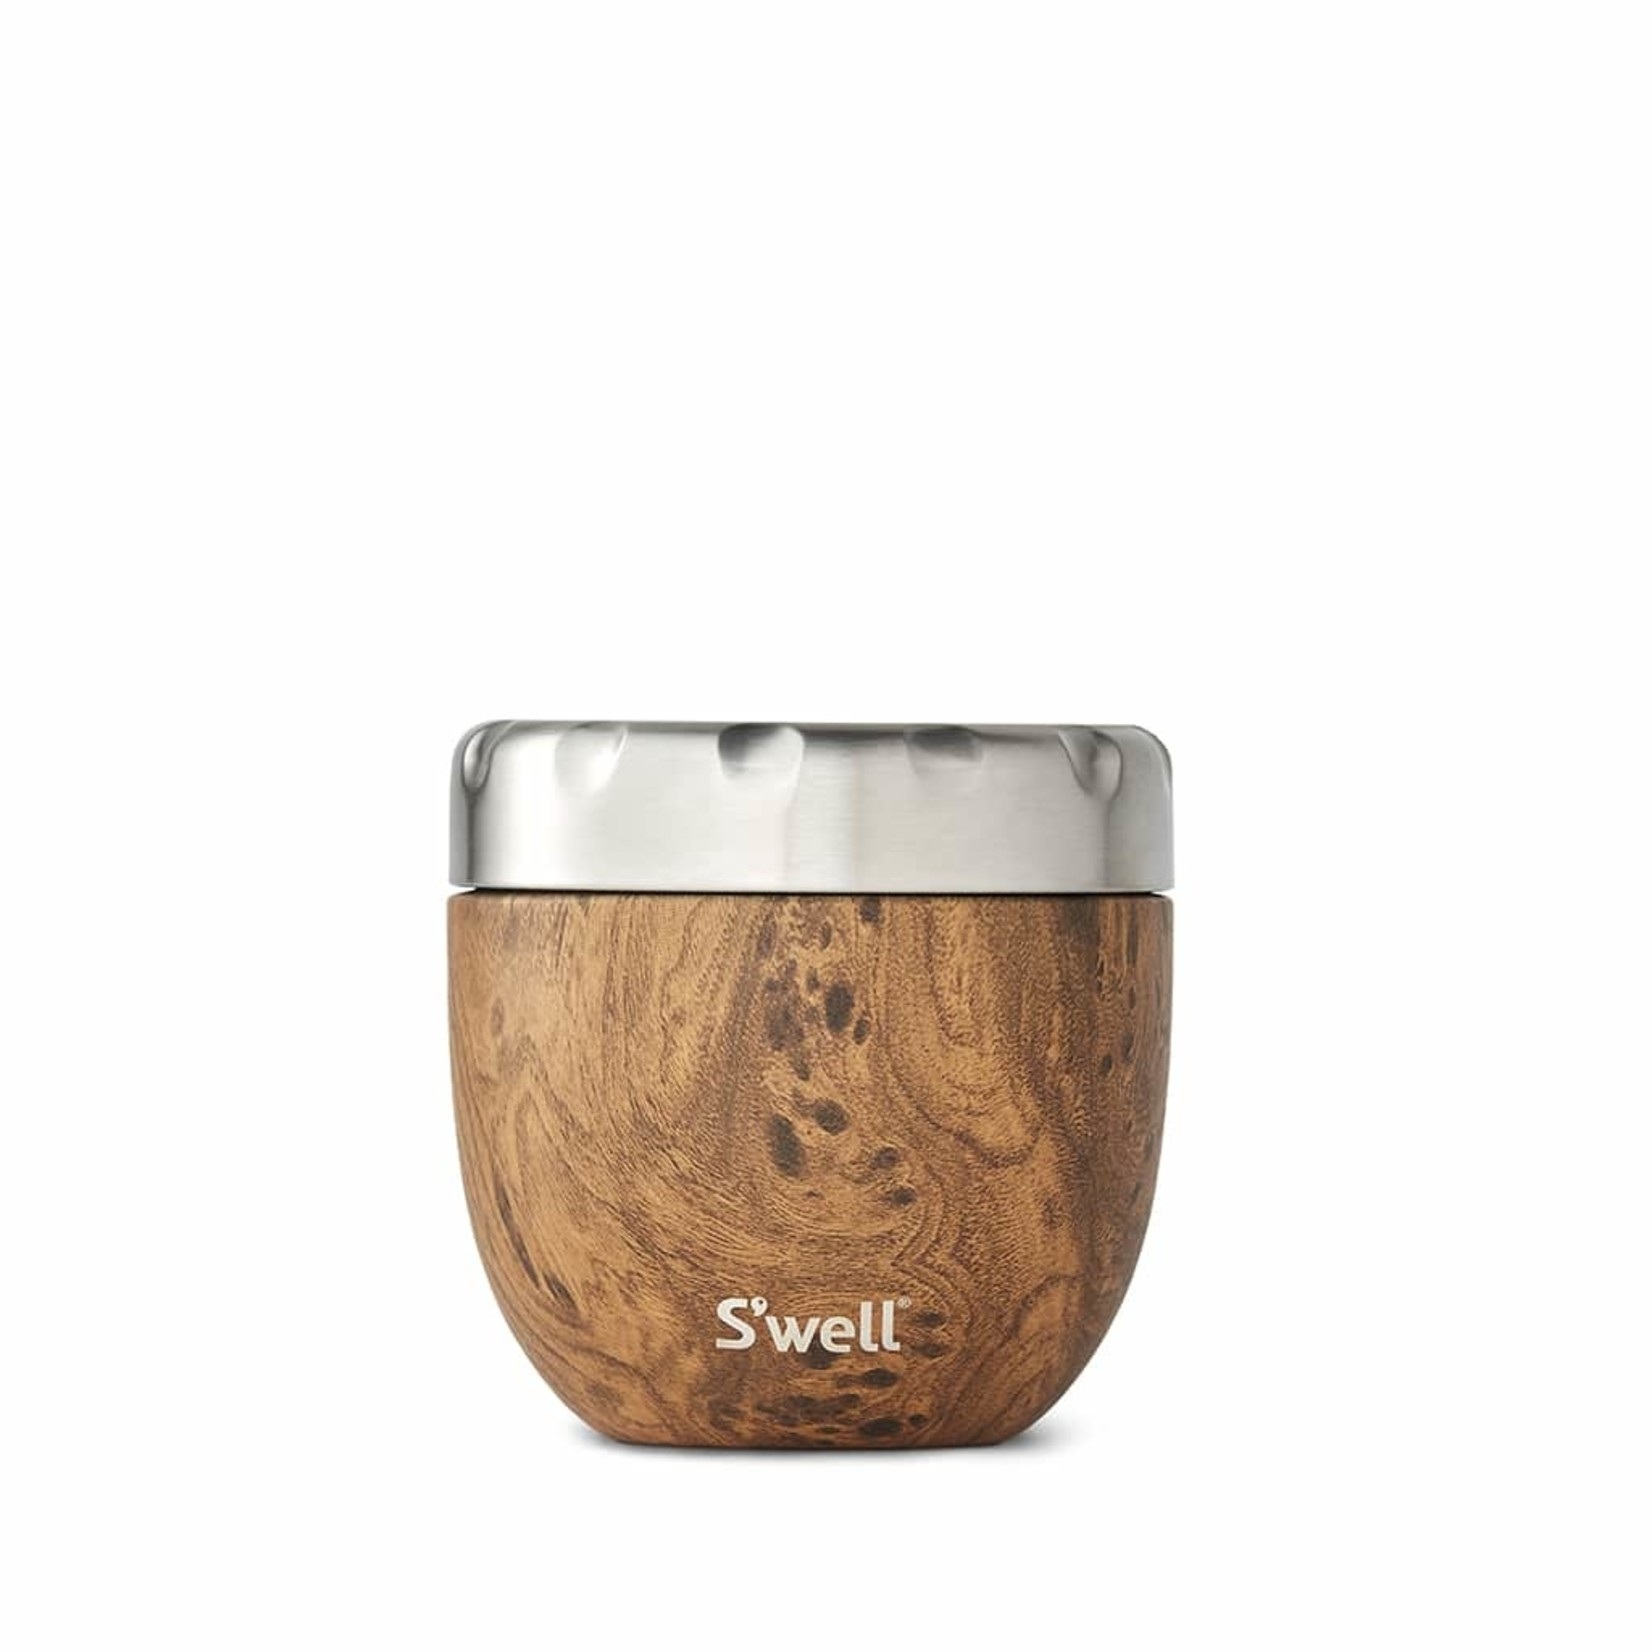 S'well S'well Bottle Eats Food Container-TEAKWOOD-21.5oz